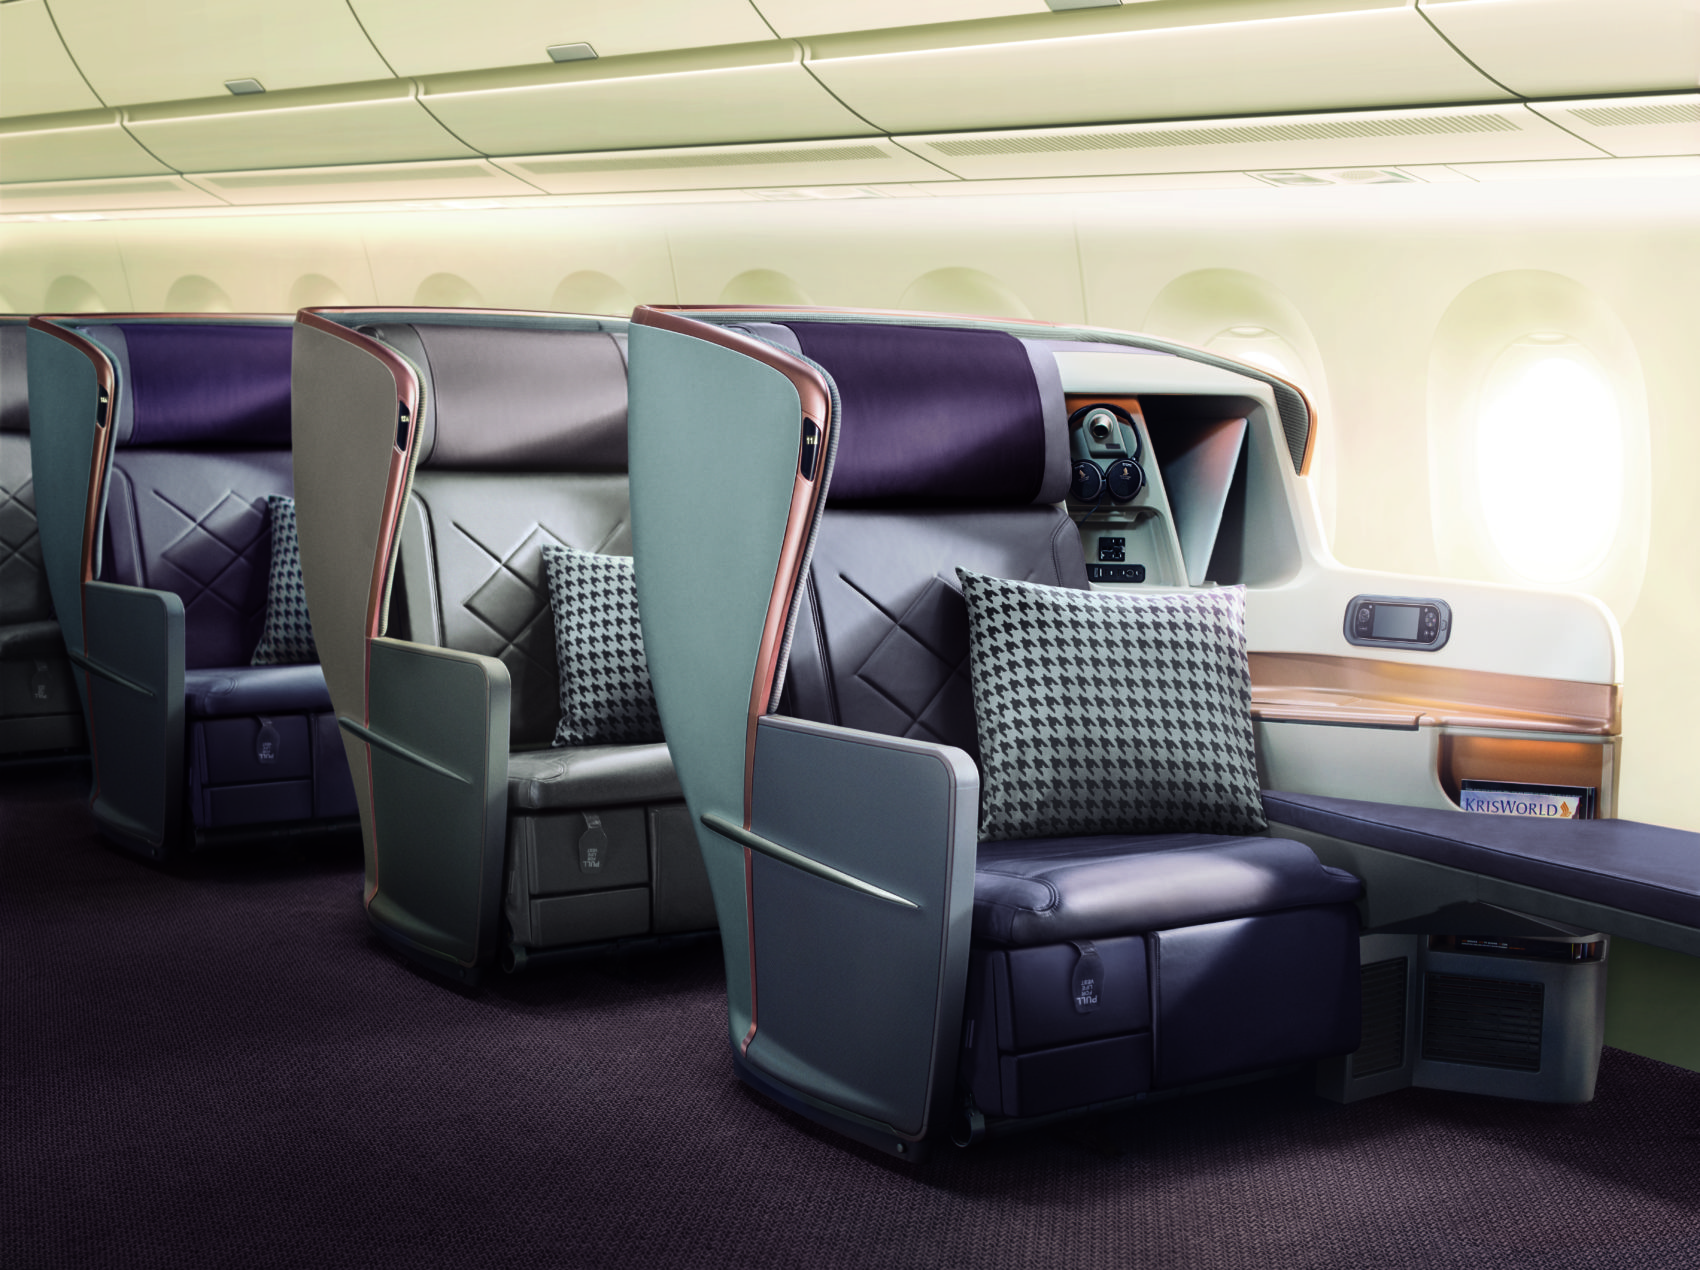 Sinagpore Airlines A350-900 business class